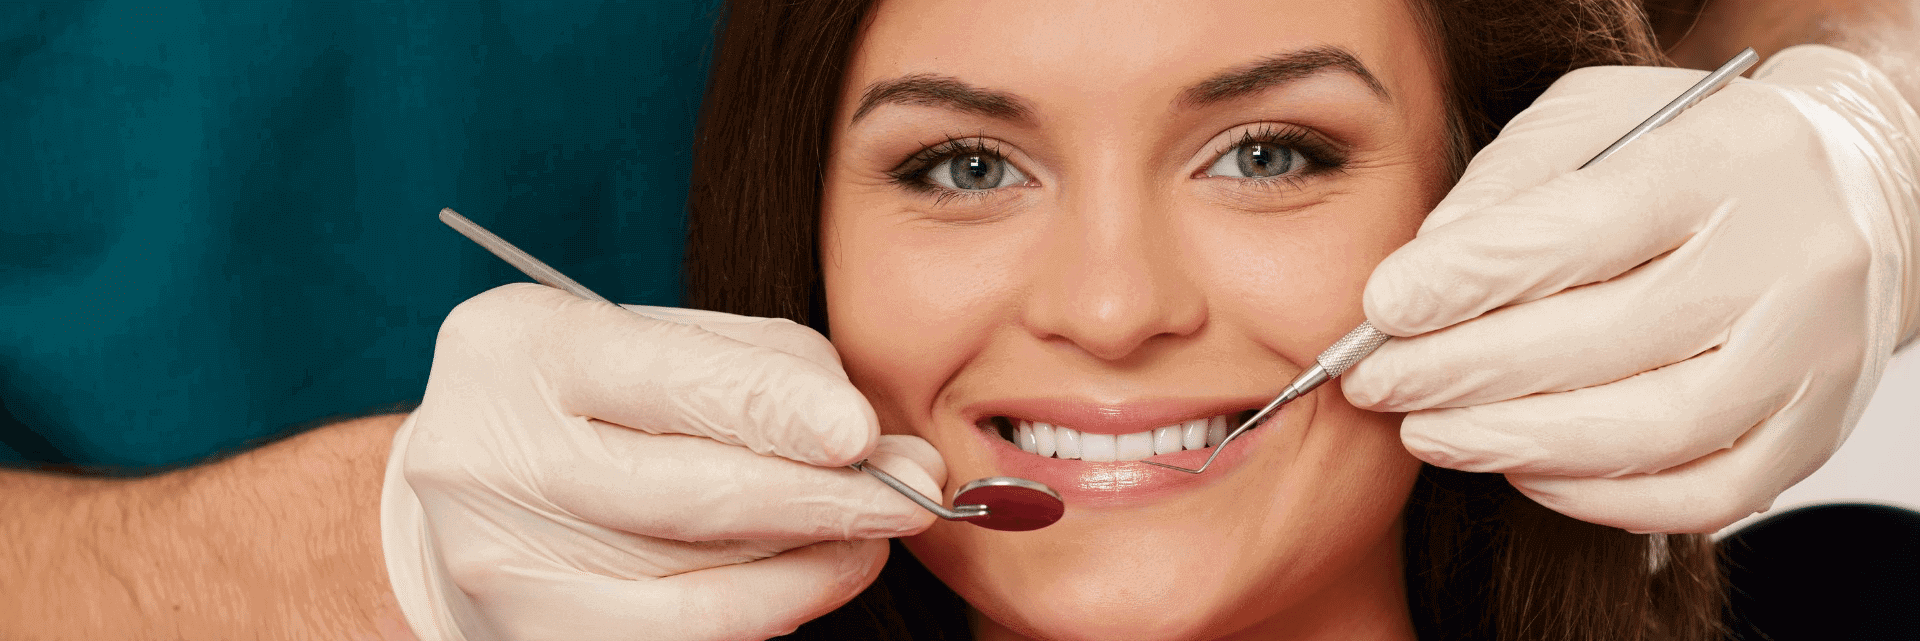 Oral health: why dental hygiene is important for healthy living